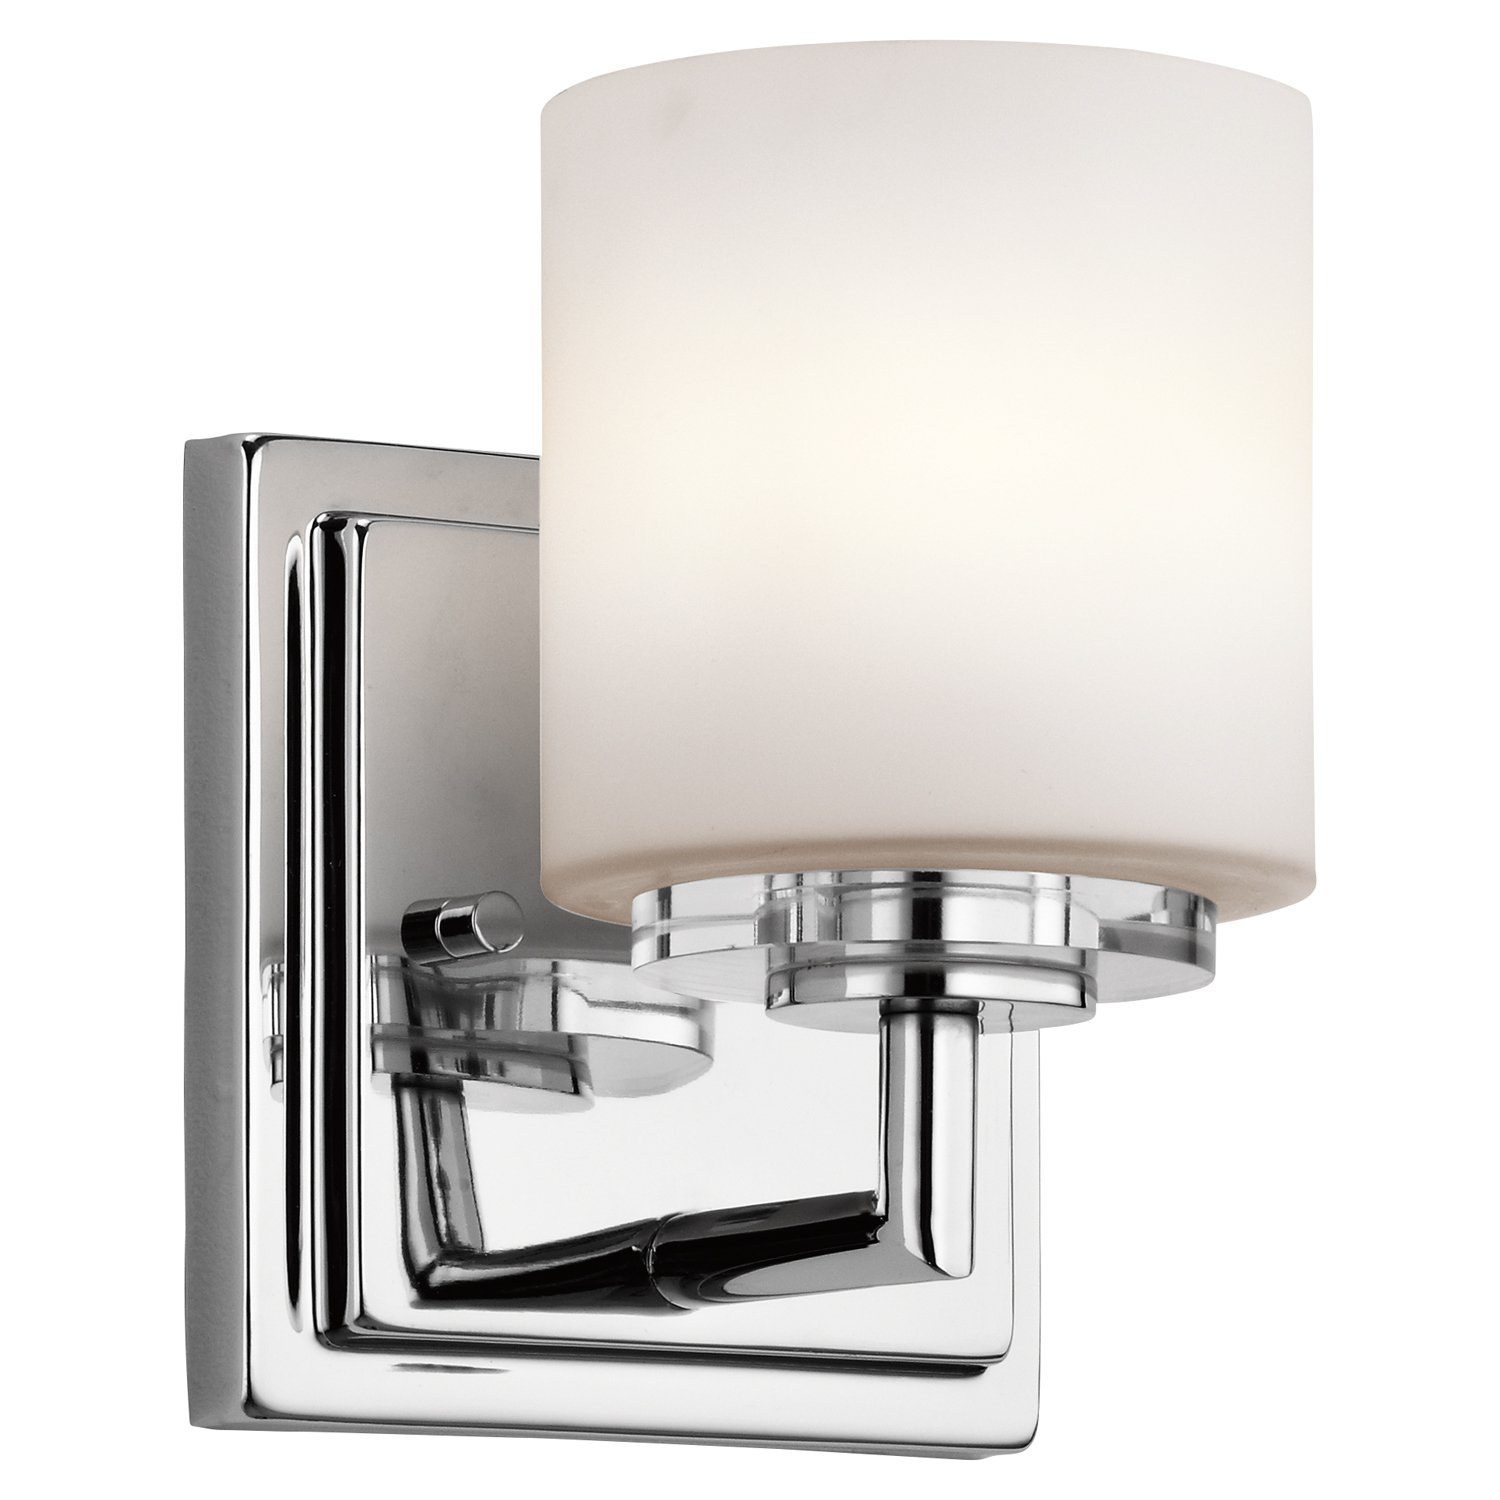 Kichler 45500ch o hara wall sconce 1 light halogen chrome kichler 45500ch o hara wall sconce 1 light halogen chrome amazon aloadofball Images